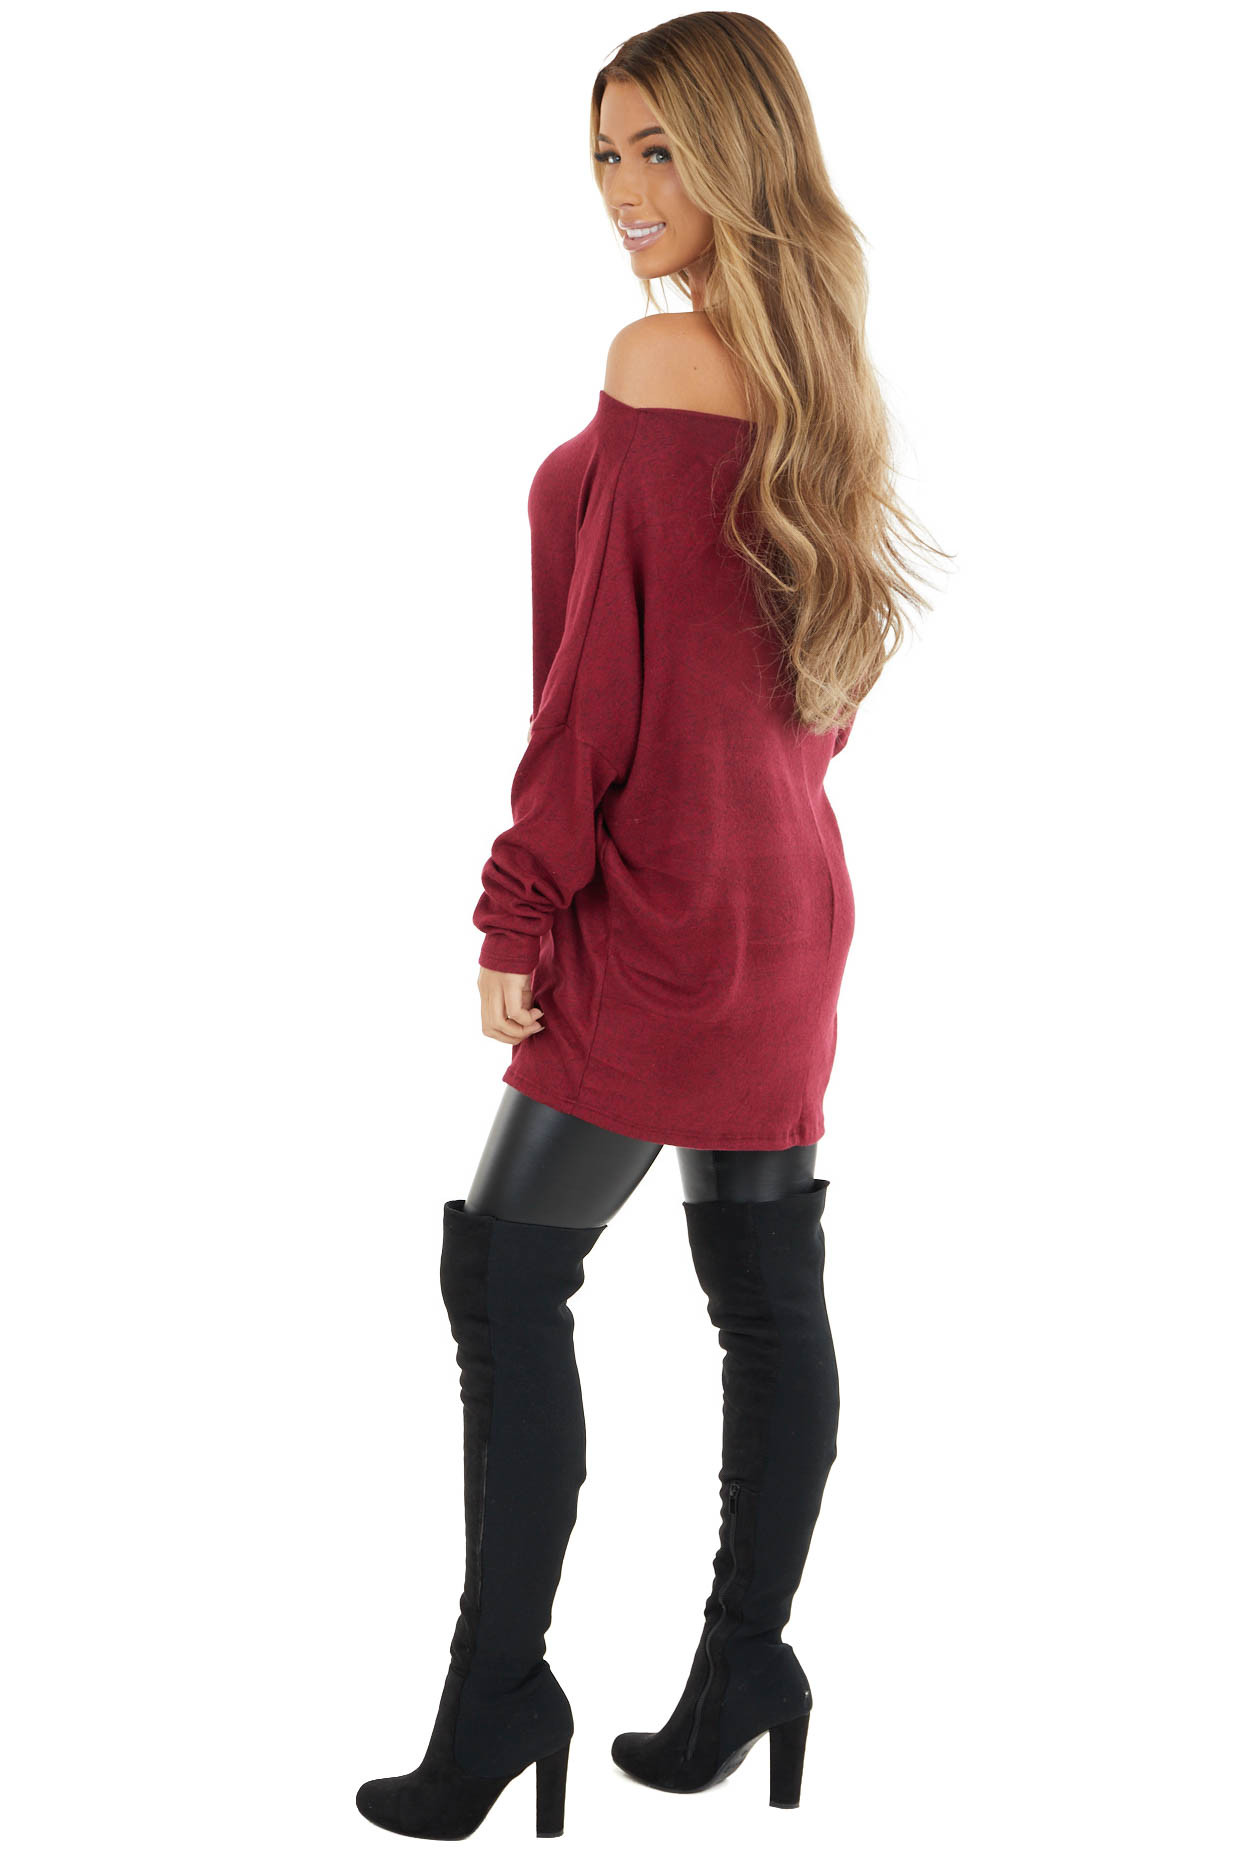 Maroon Two Tone Off the Shoulder Long Sleeve Knit Top